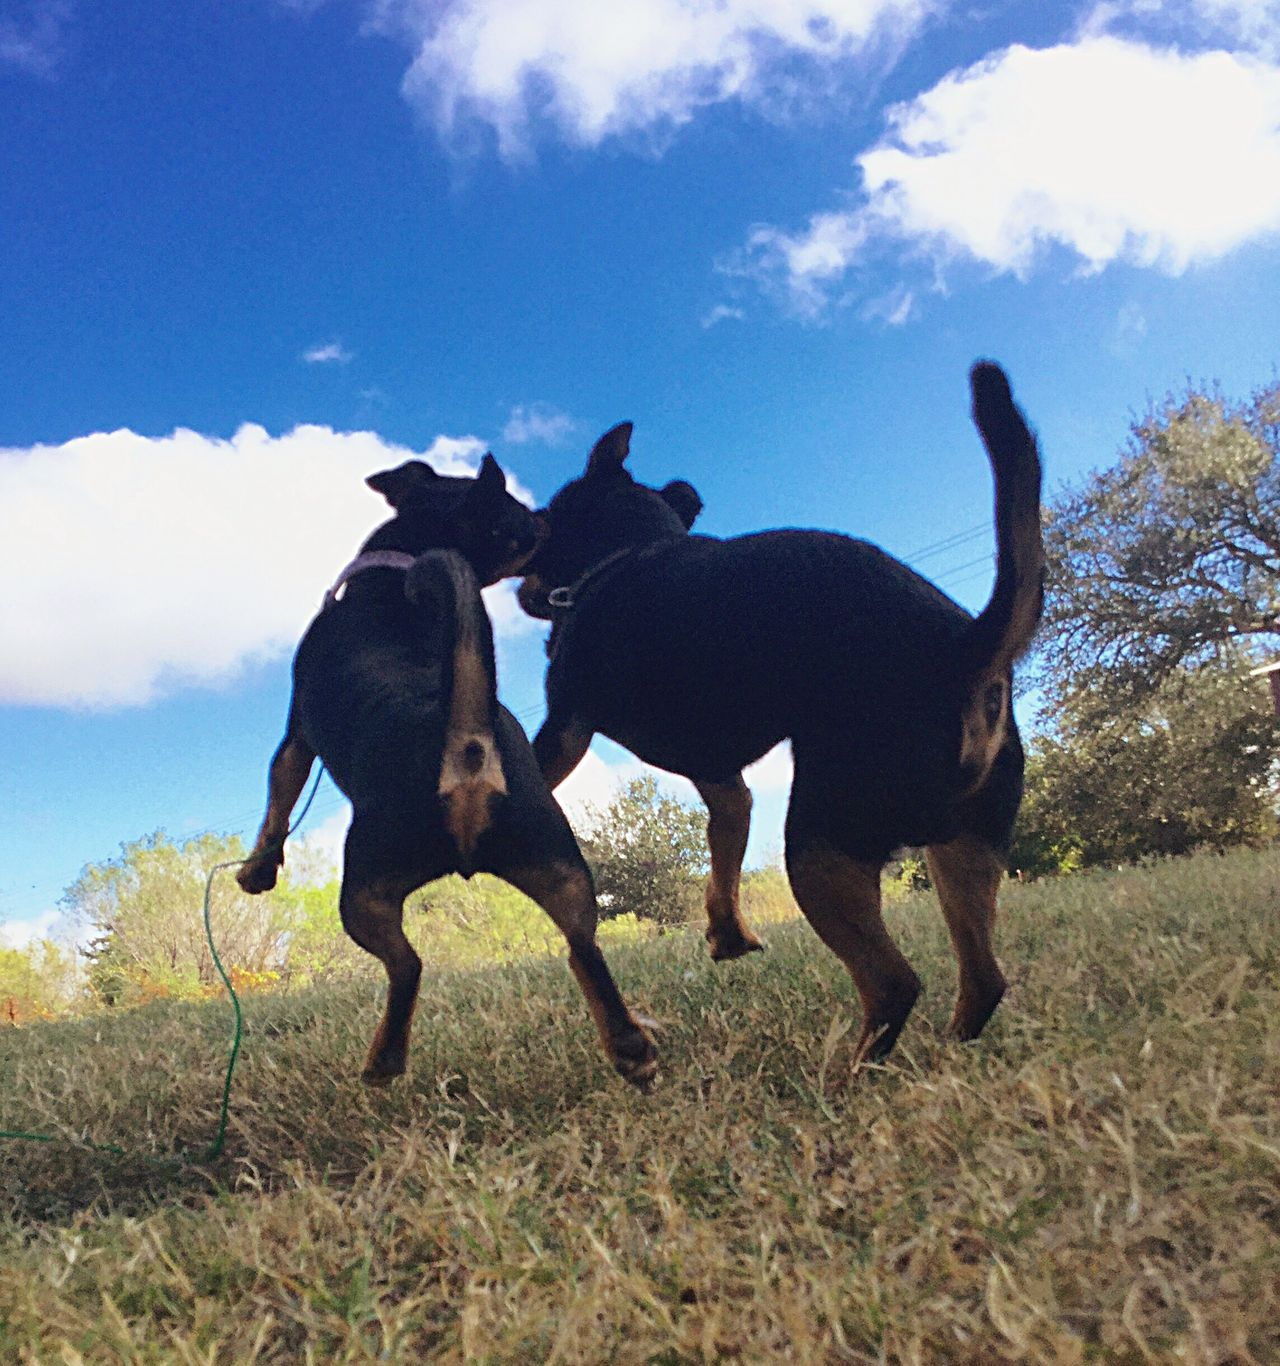 Playful Playfuldogs Animal Themes Two Animals Togetherness Brother & Sister Littermates Bonded Bondedforlife Blue Bluesky♡ Nature Animal Behavior Cloud - Sky Outdoors Devinetexas Simple Things In Life JustBeautiful NaturalBeauty  Ipadair2 Dogsof Eyeem Simple Moment Stop Motion Love Mydogs